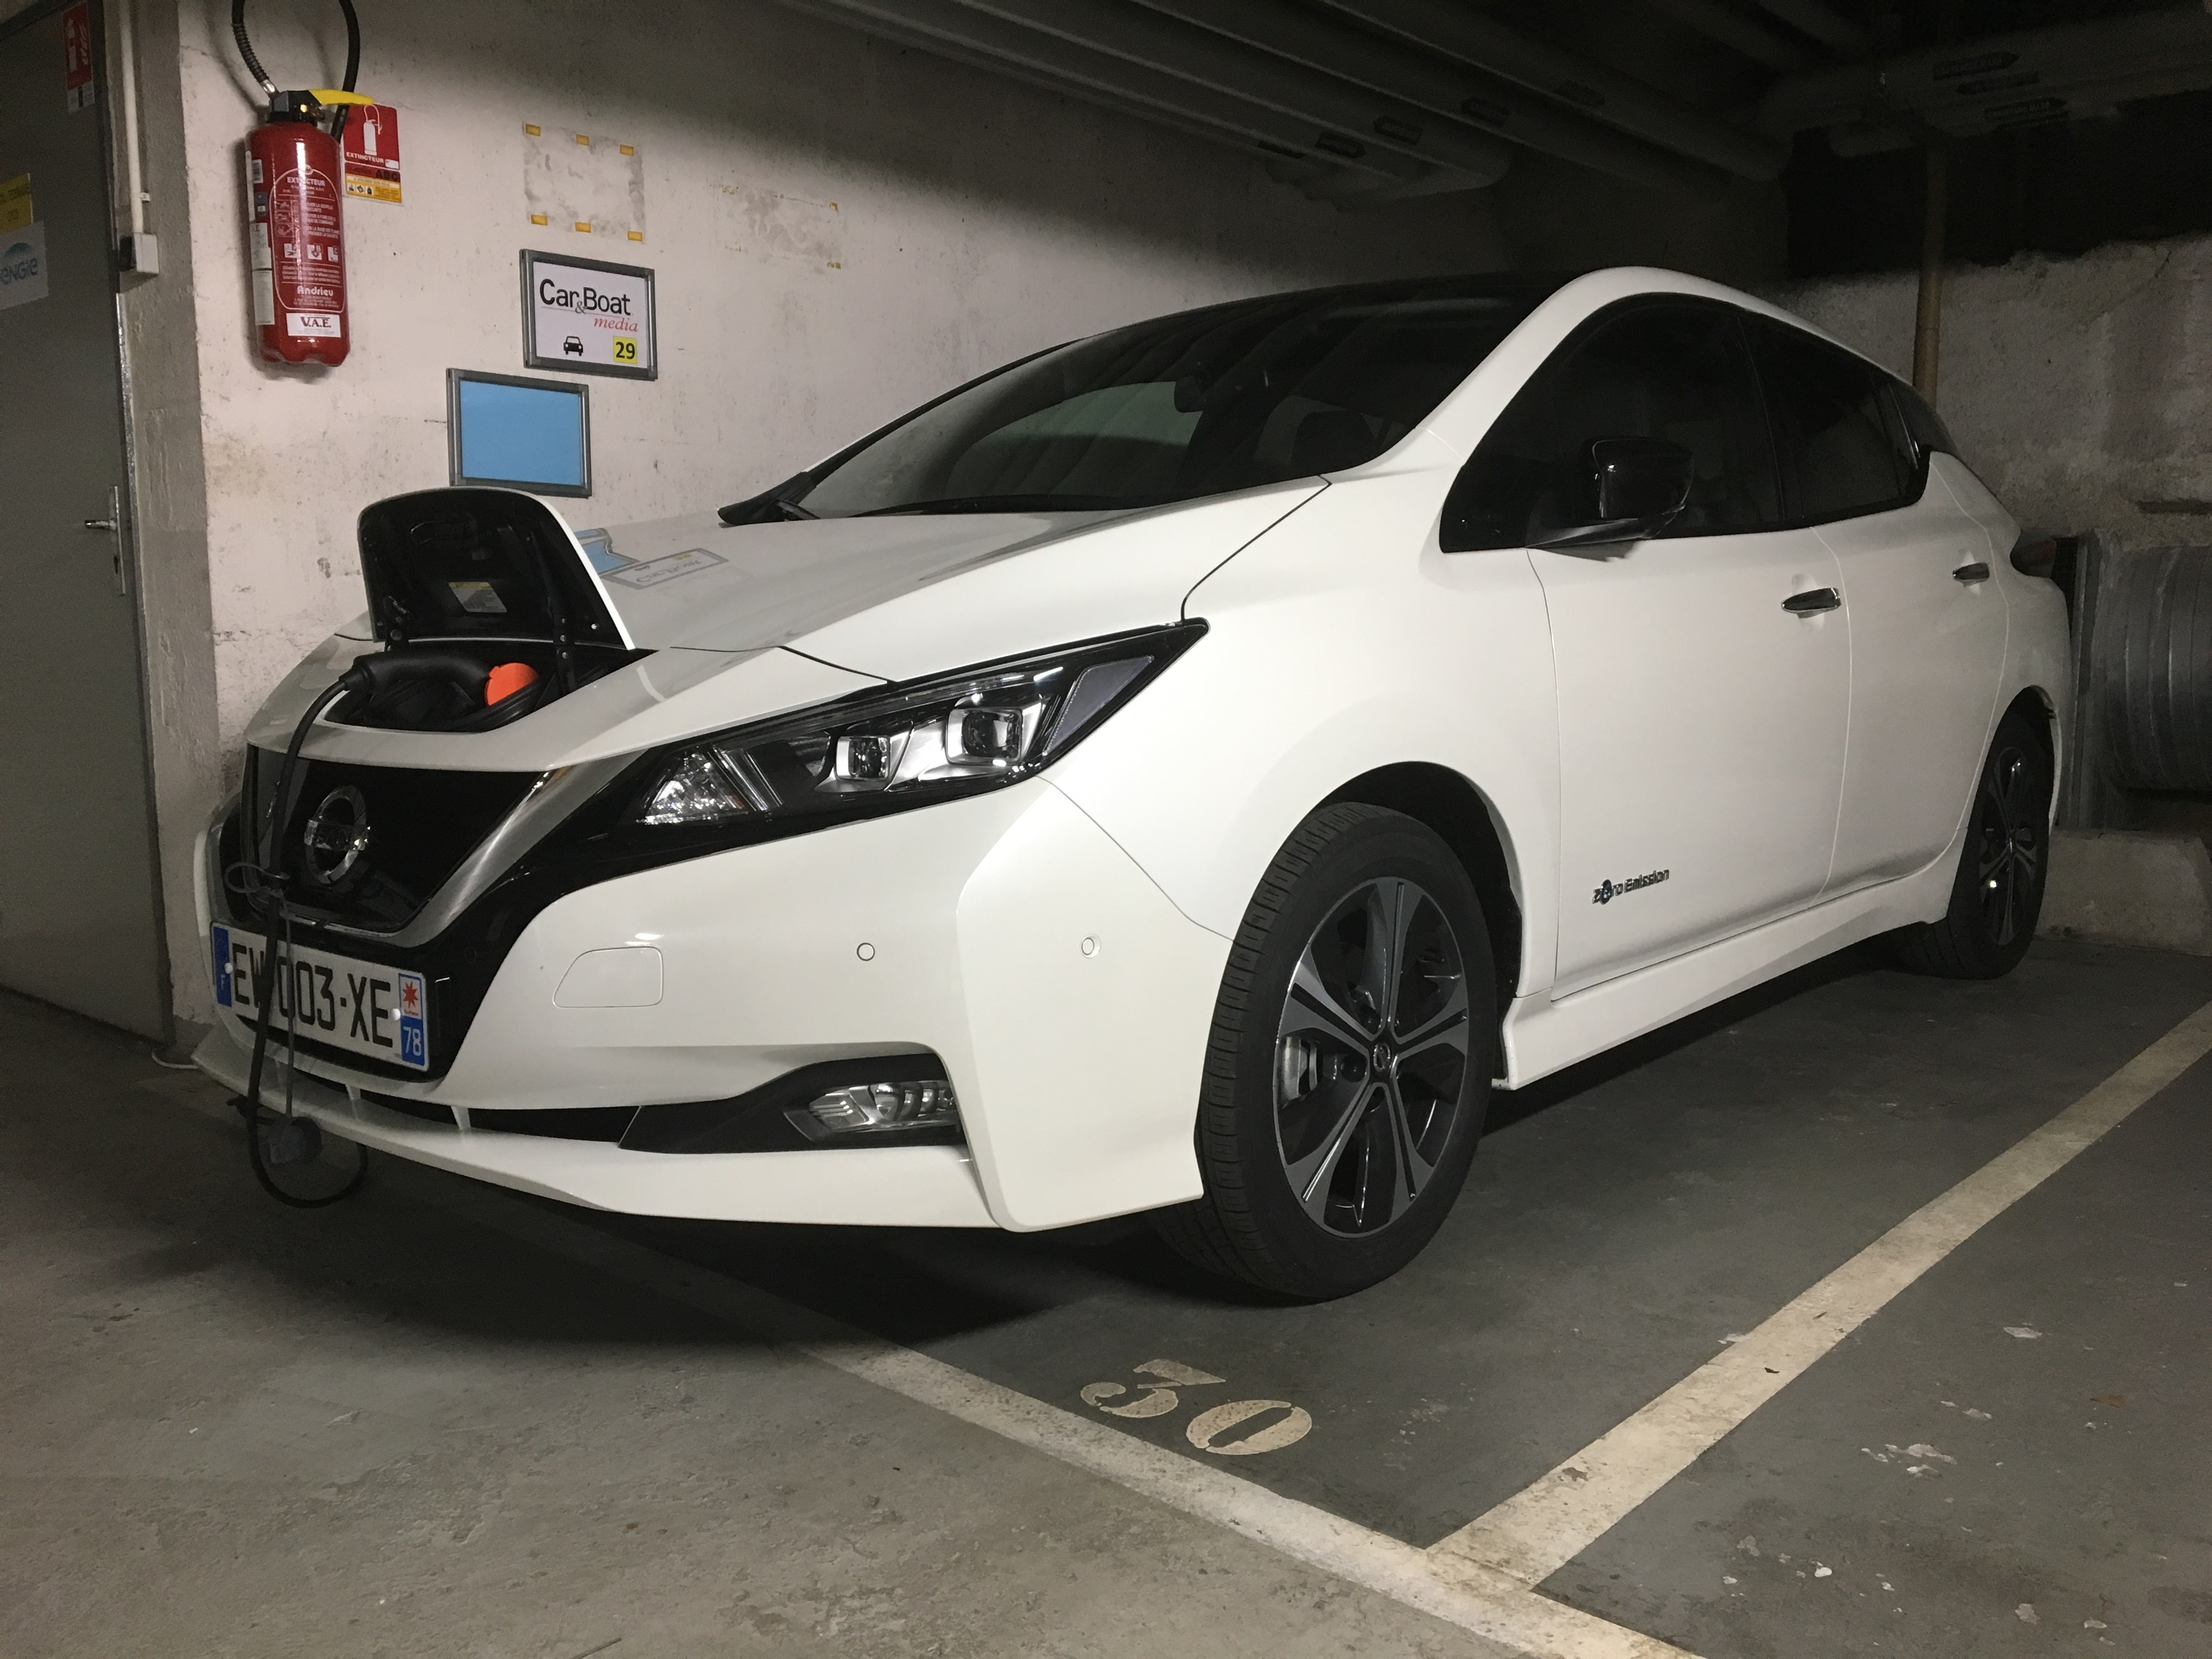 la nissan leaf 2 2018 jusqu 39 la panne combien de kilom tres peut on faire en une seule charge. Black Bedroom Furniture Sets. Home Design Ideas